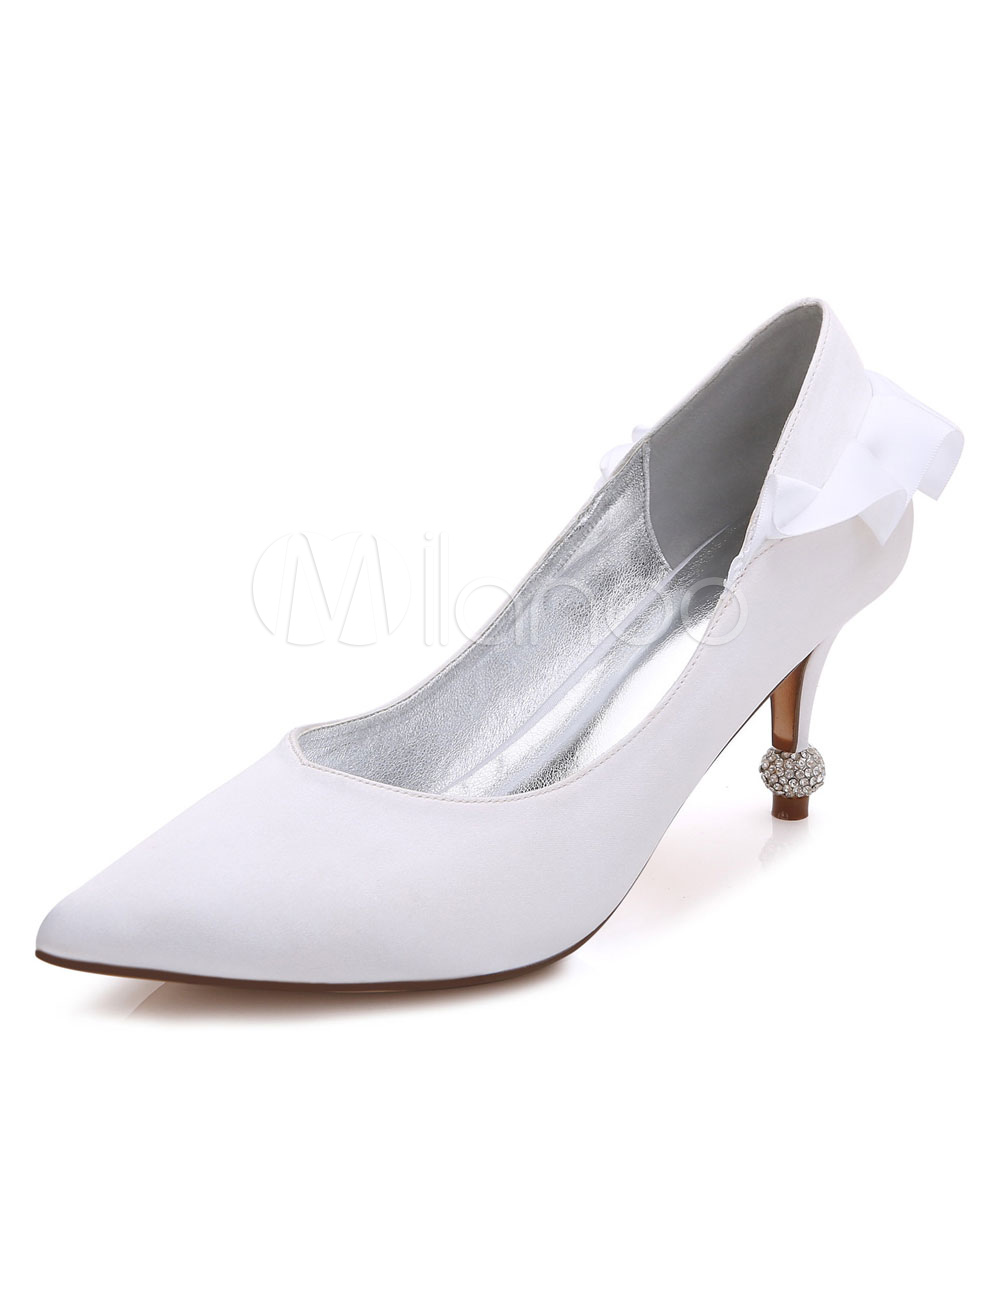 Buy White Wedding Shoes High Heel Satin Pointed Toe Ruffle Slip On Bridal Pumps for $47.69 in Milanoo store